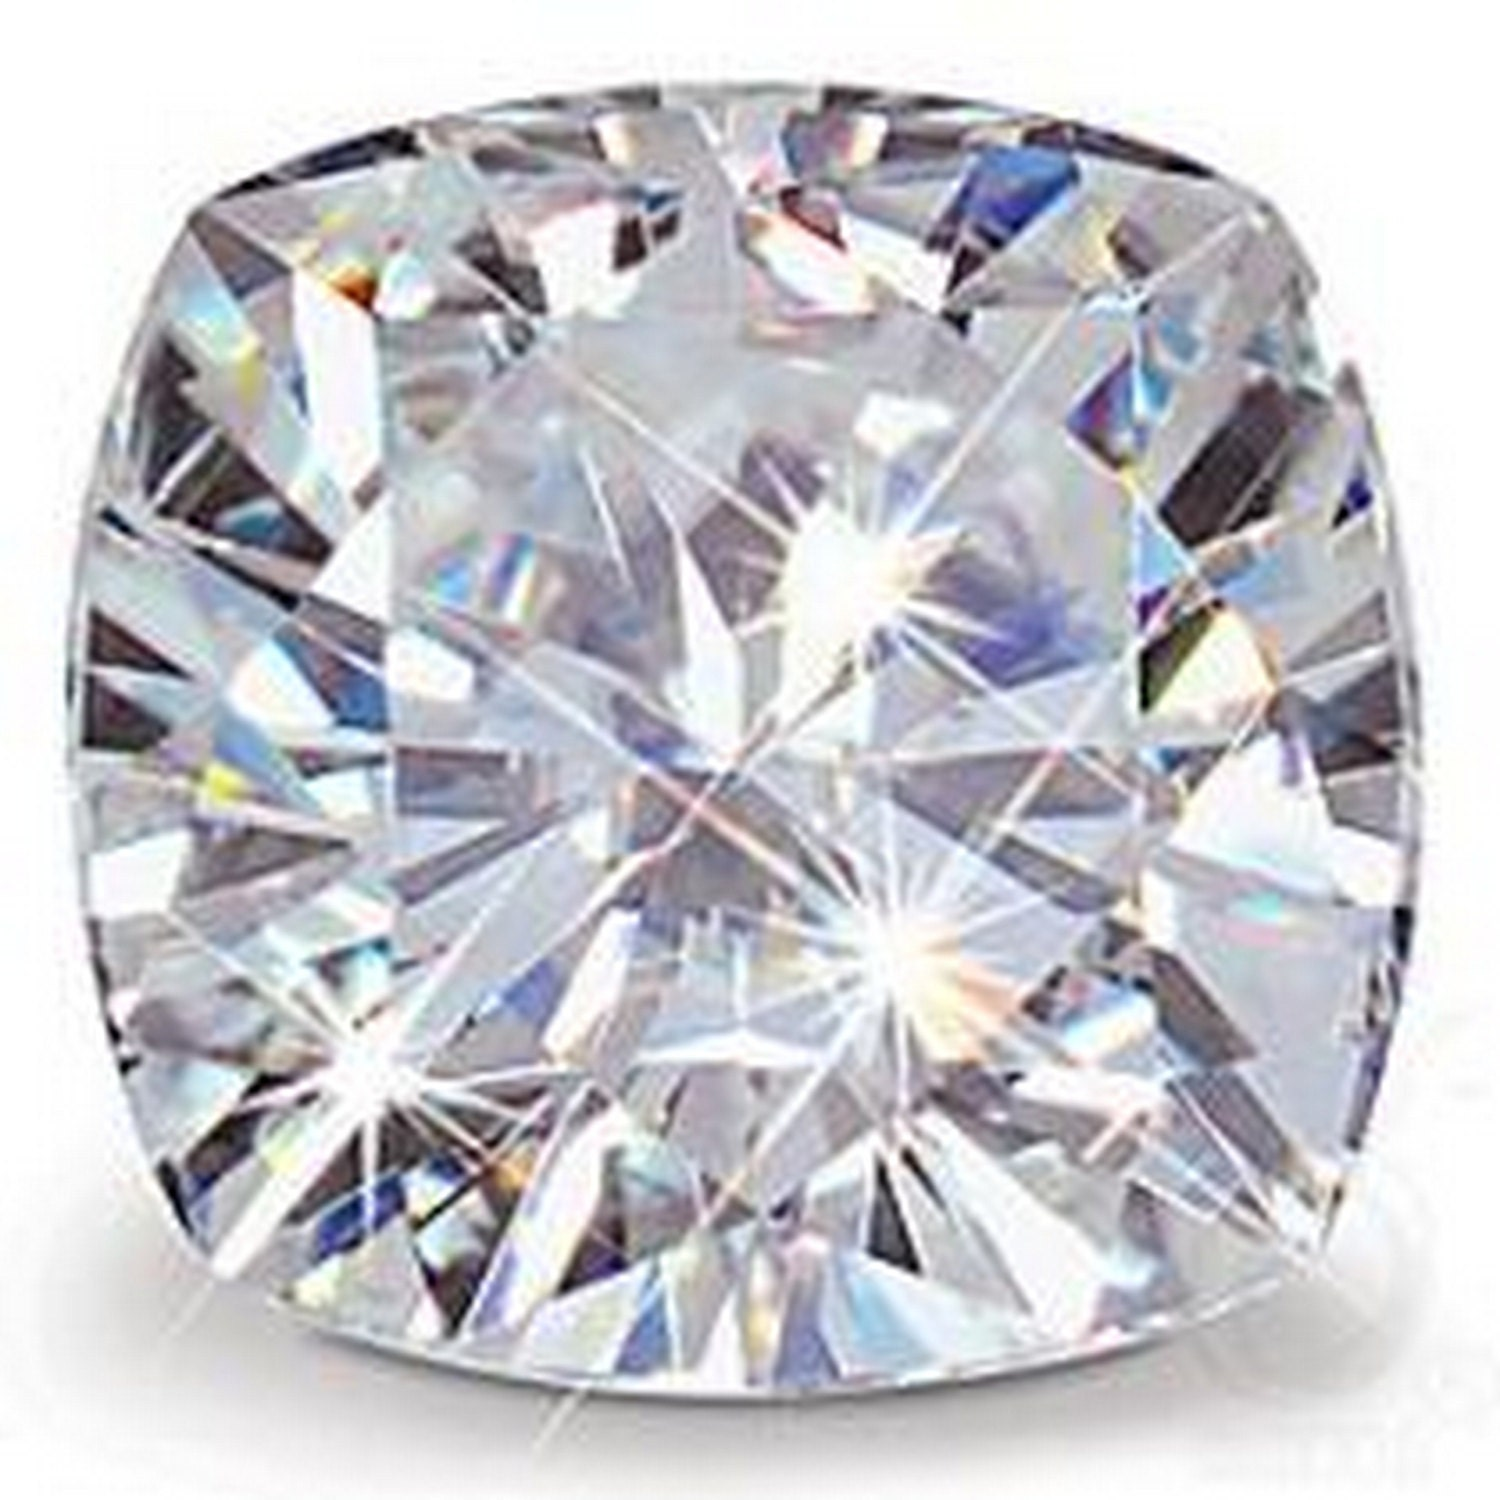 moissanite gemstone harro gem pear custom